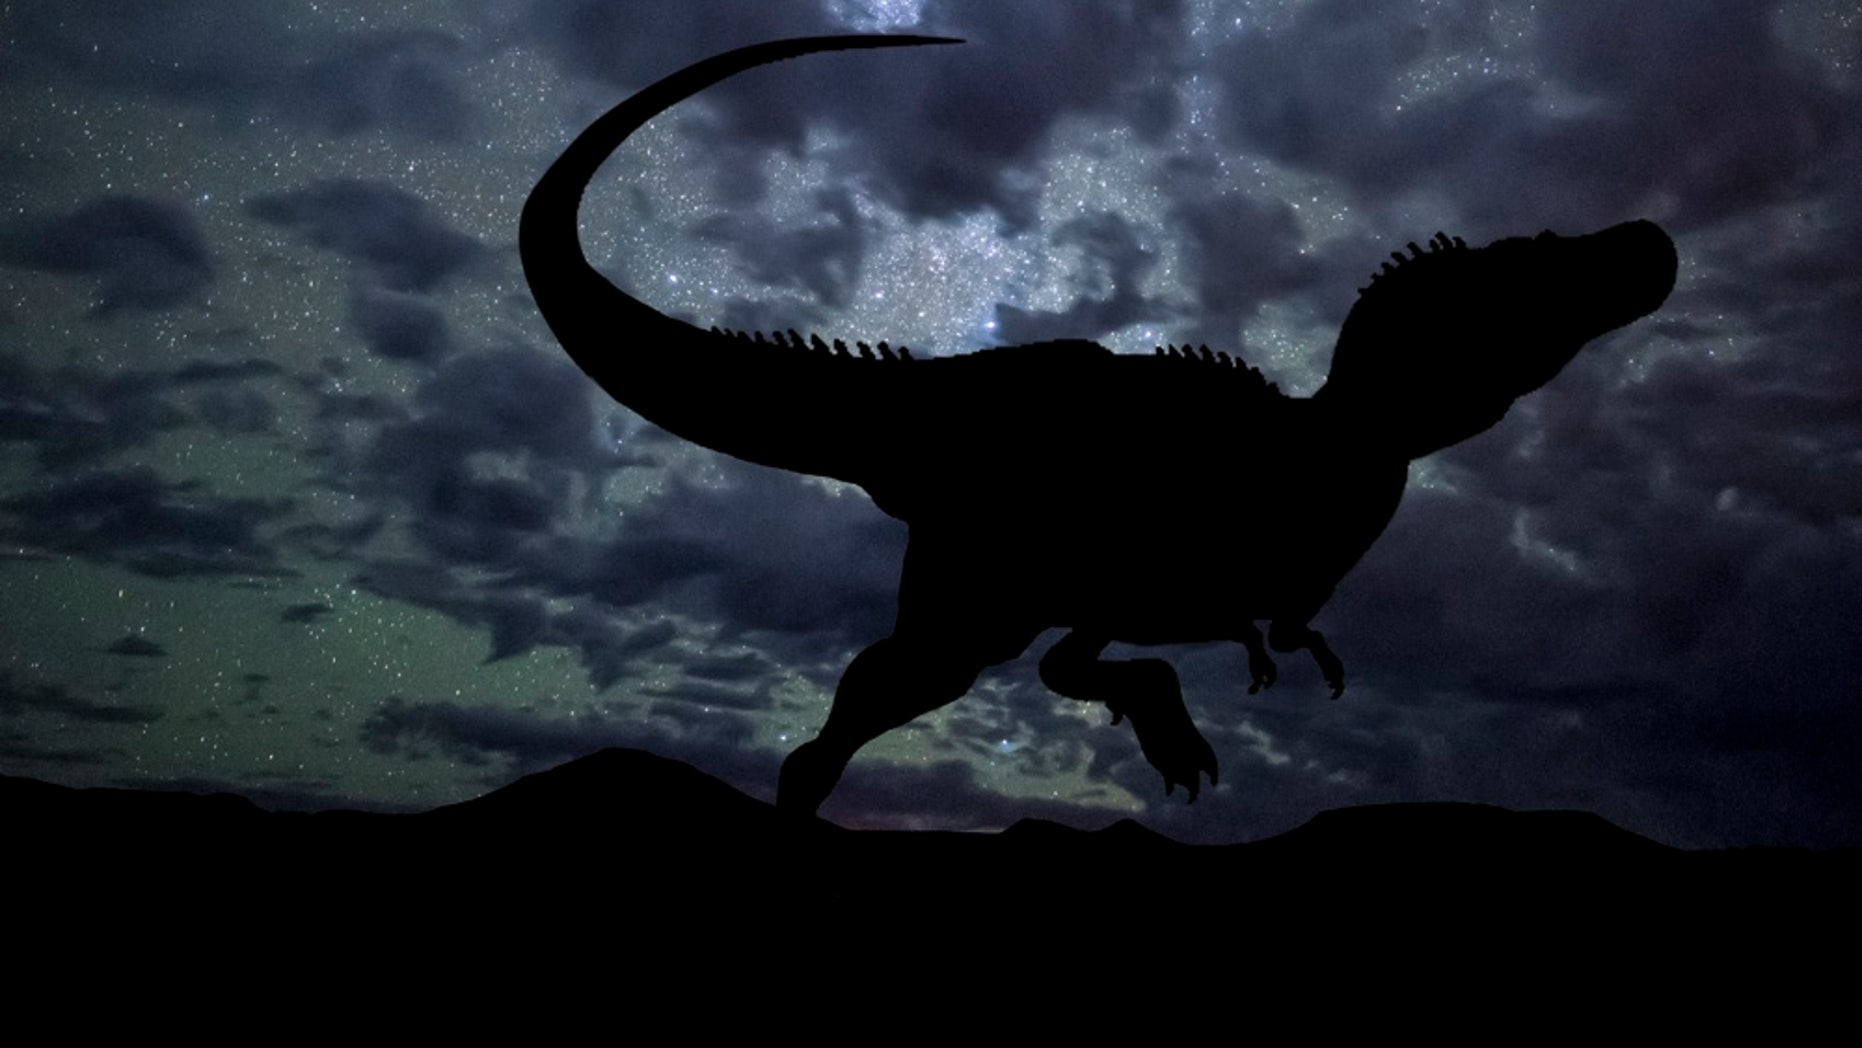 What would the night sky have looked like to a fierce <em>T. rex</em> some 67 million years ago?